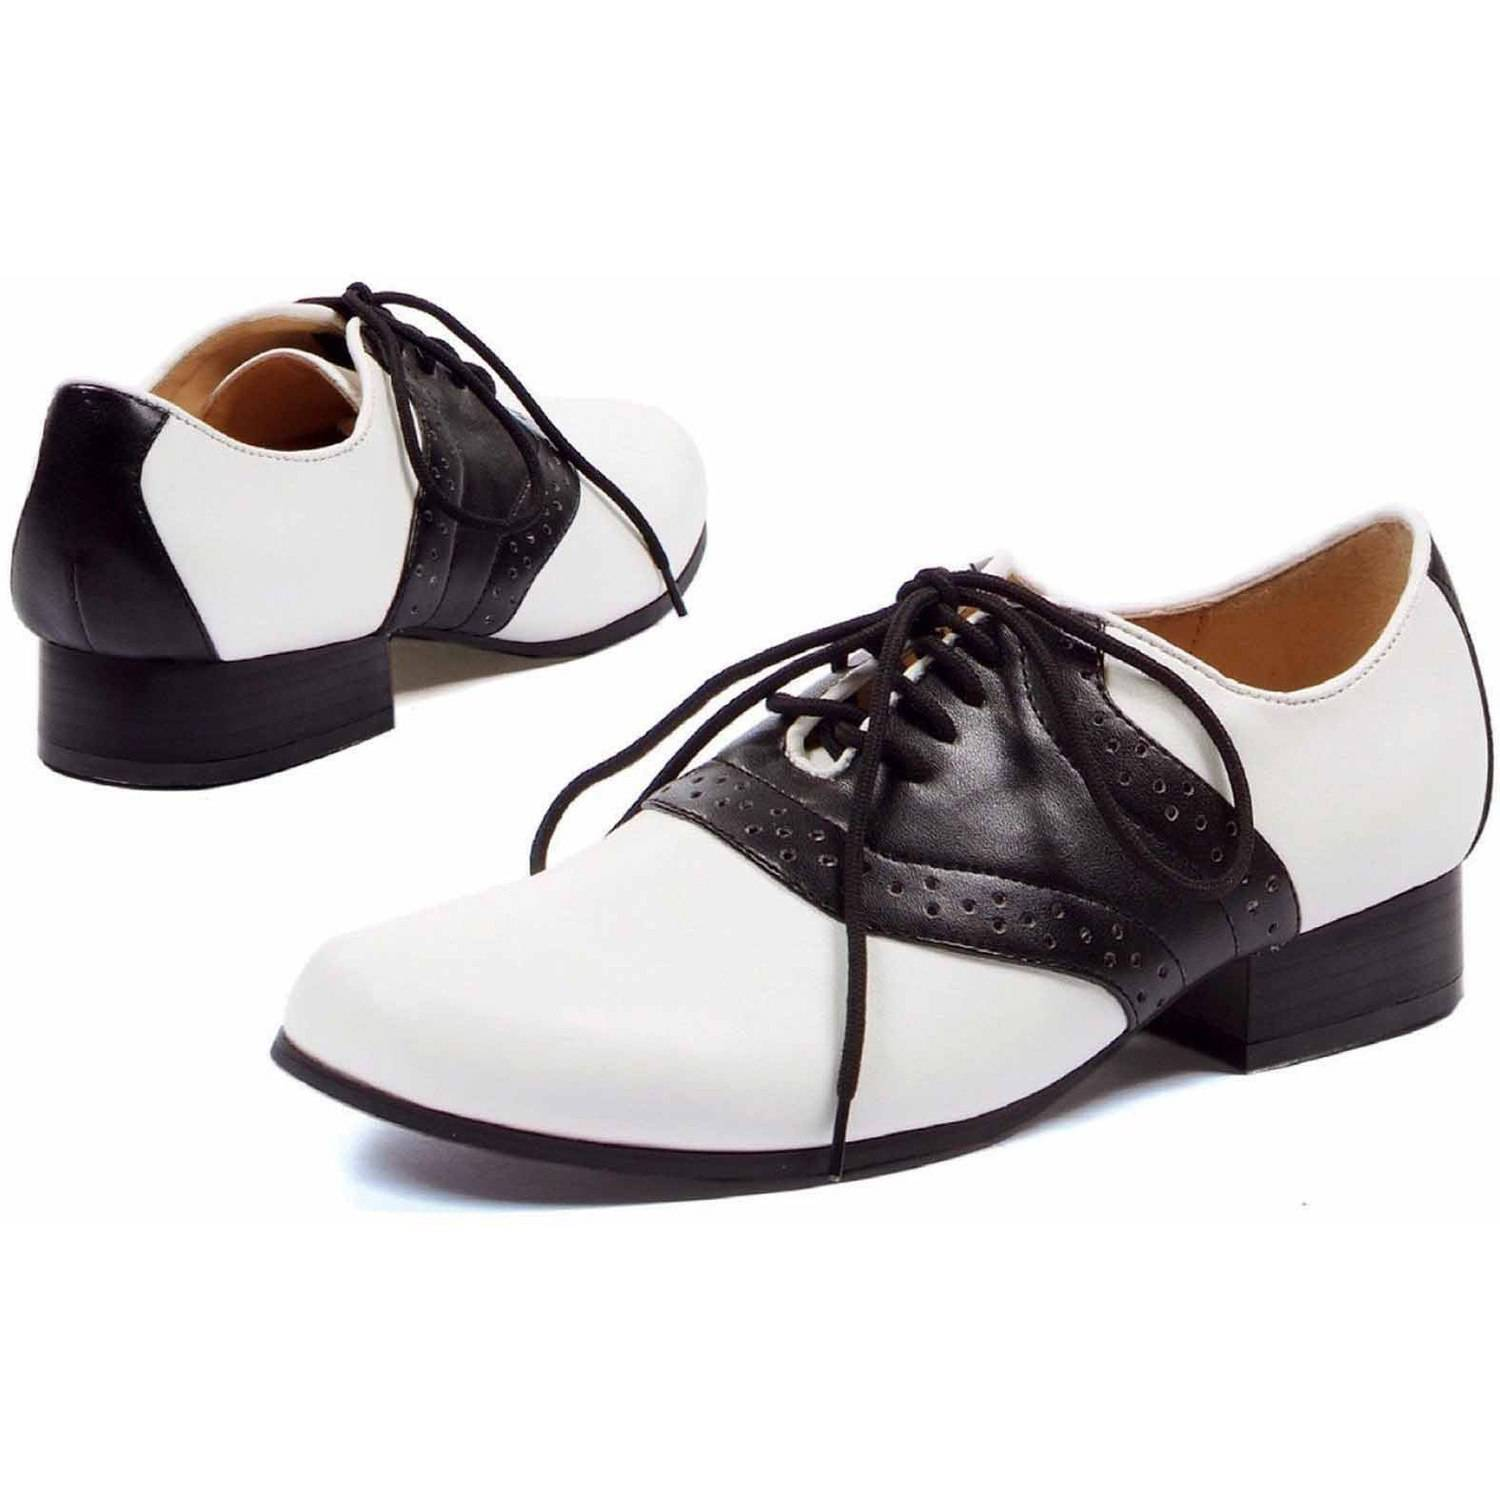 Saddle Black/White Shoes Women's Adult Halloween Accessory